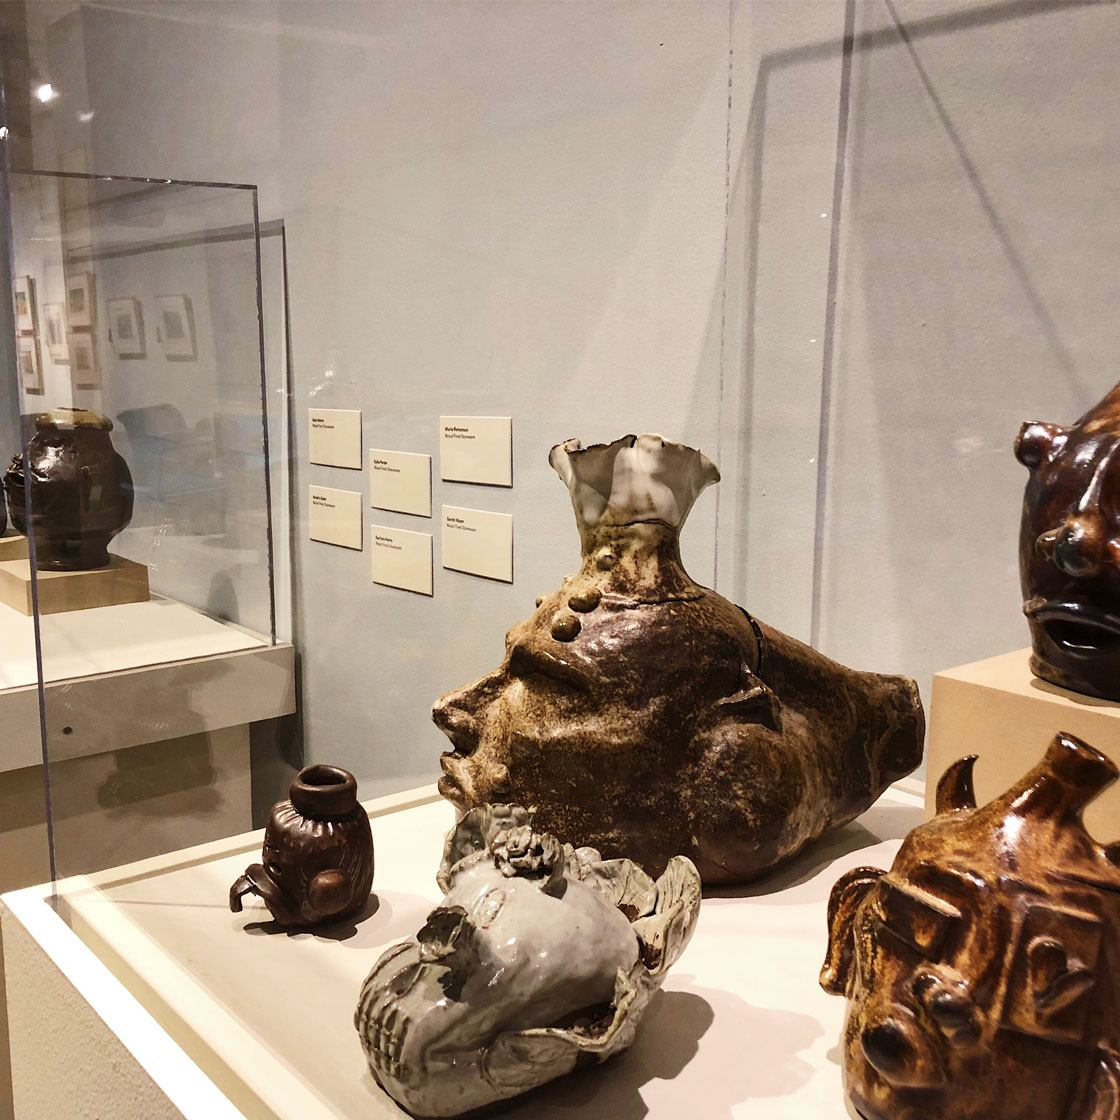 Handcrafted ceramic works in various abstract face shapes displayed in museum display cases